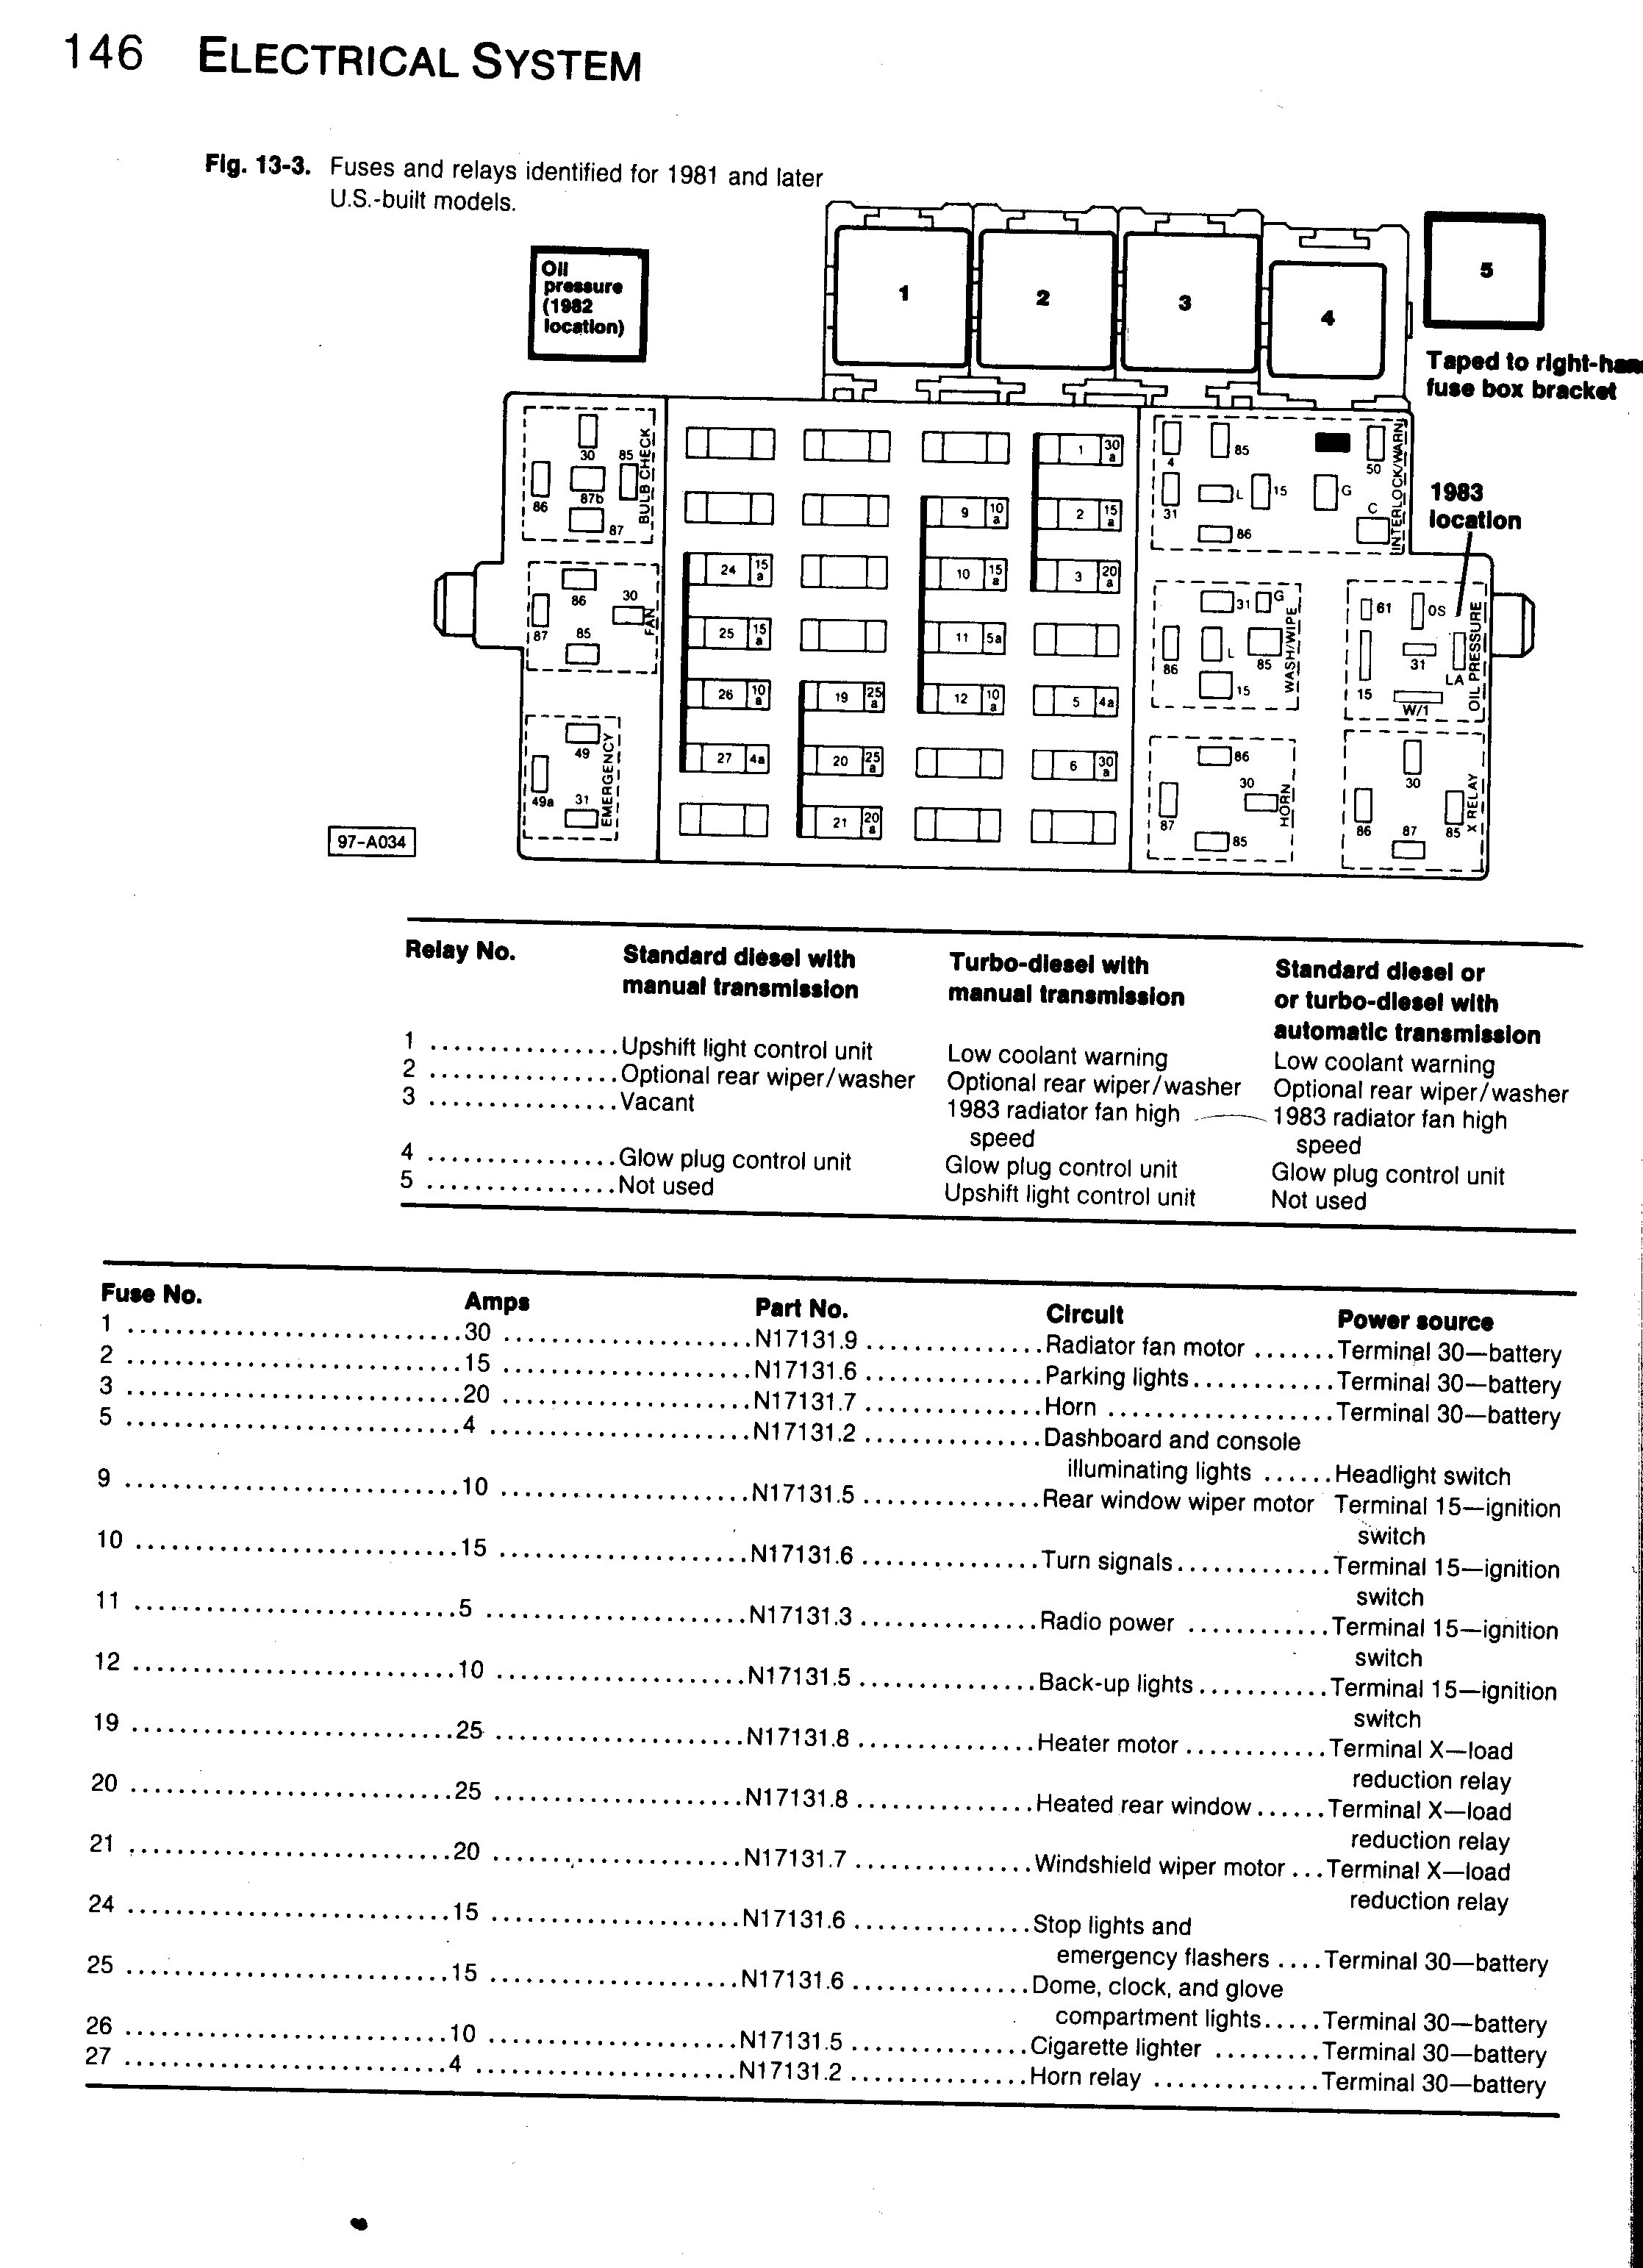 98 Eclipse Interior Fuse Diagram 2 0 Wiring Diagrams 2002 Vw Engine Library Rh Bloxhuette De Civic Tahoe